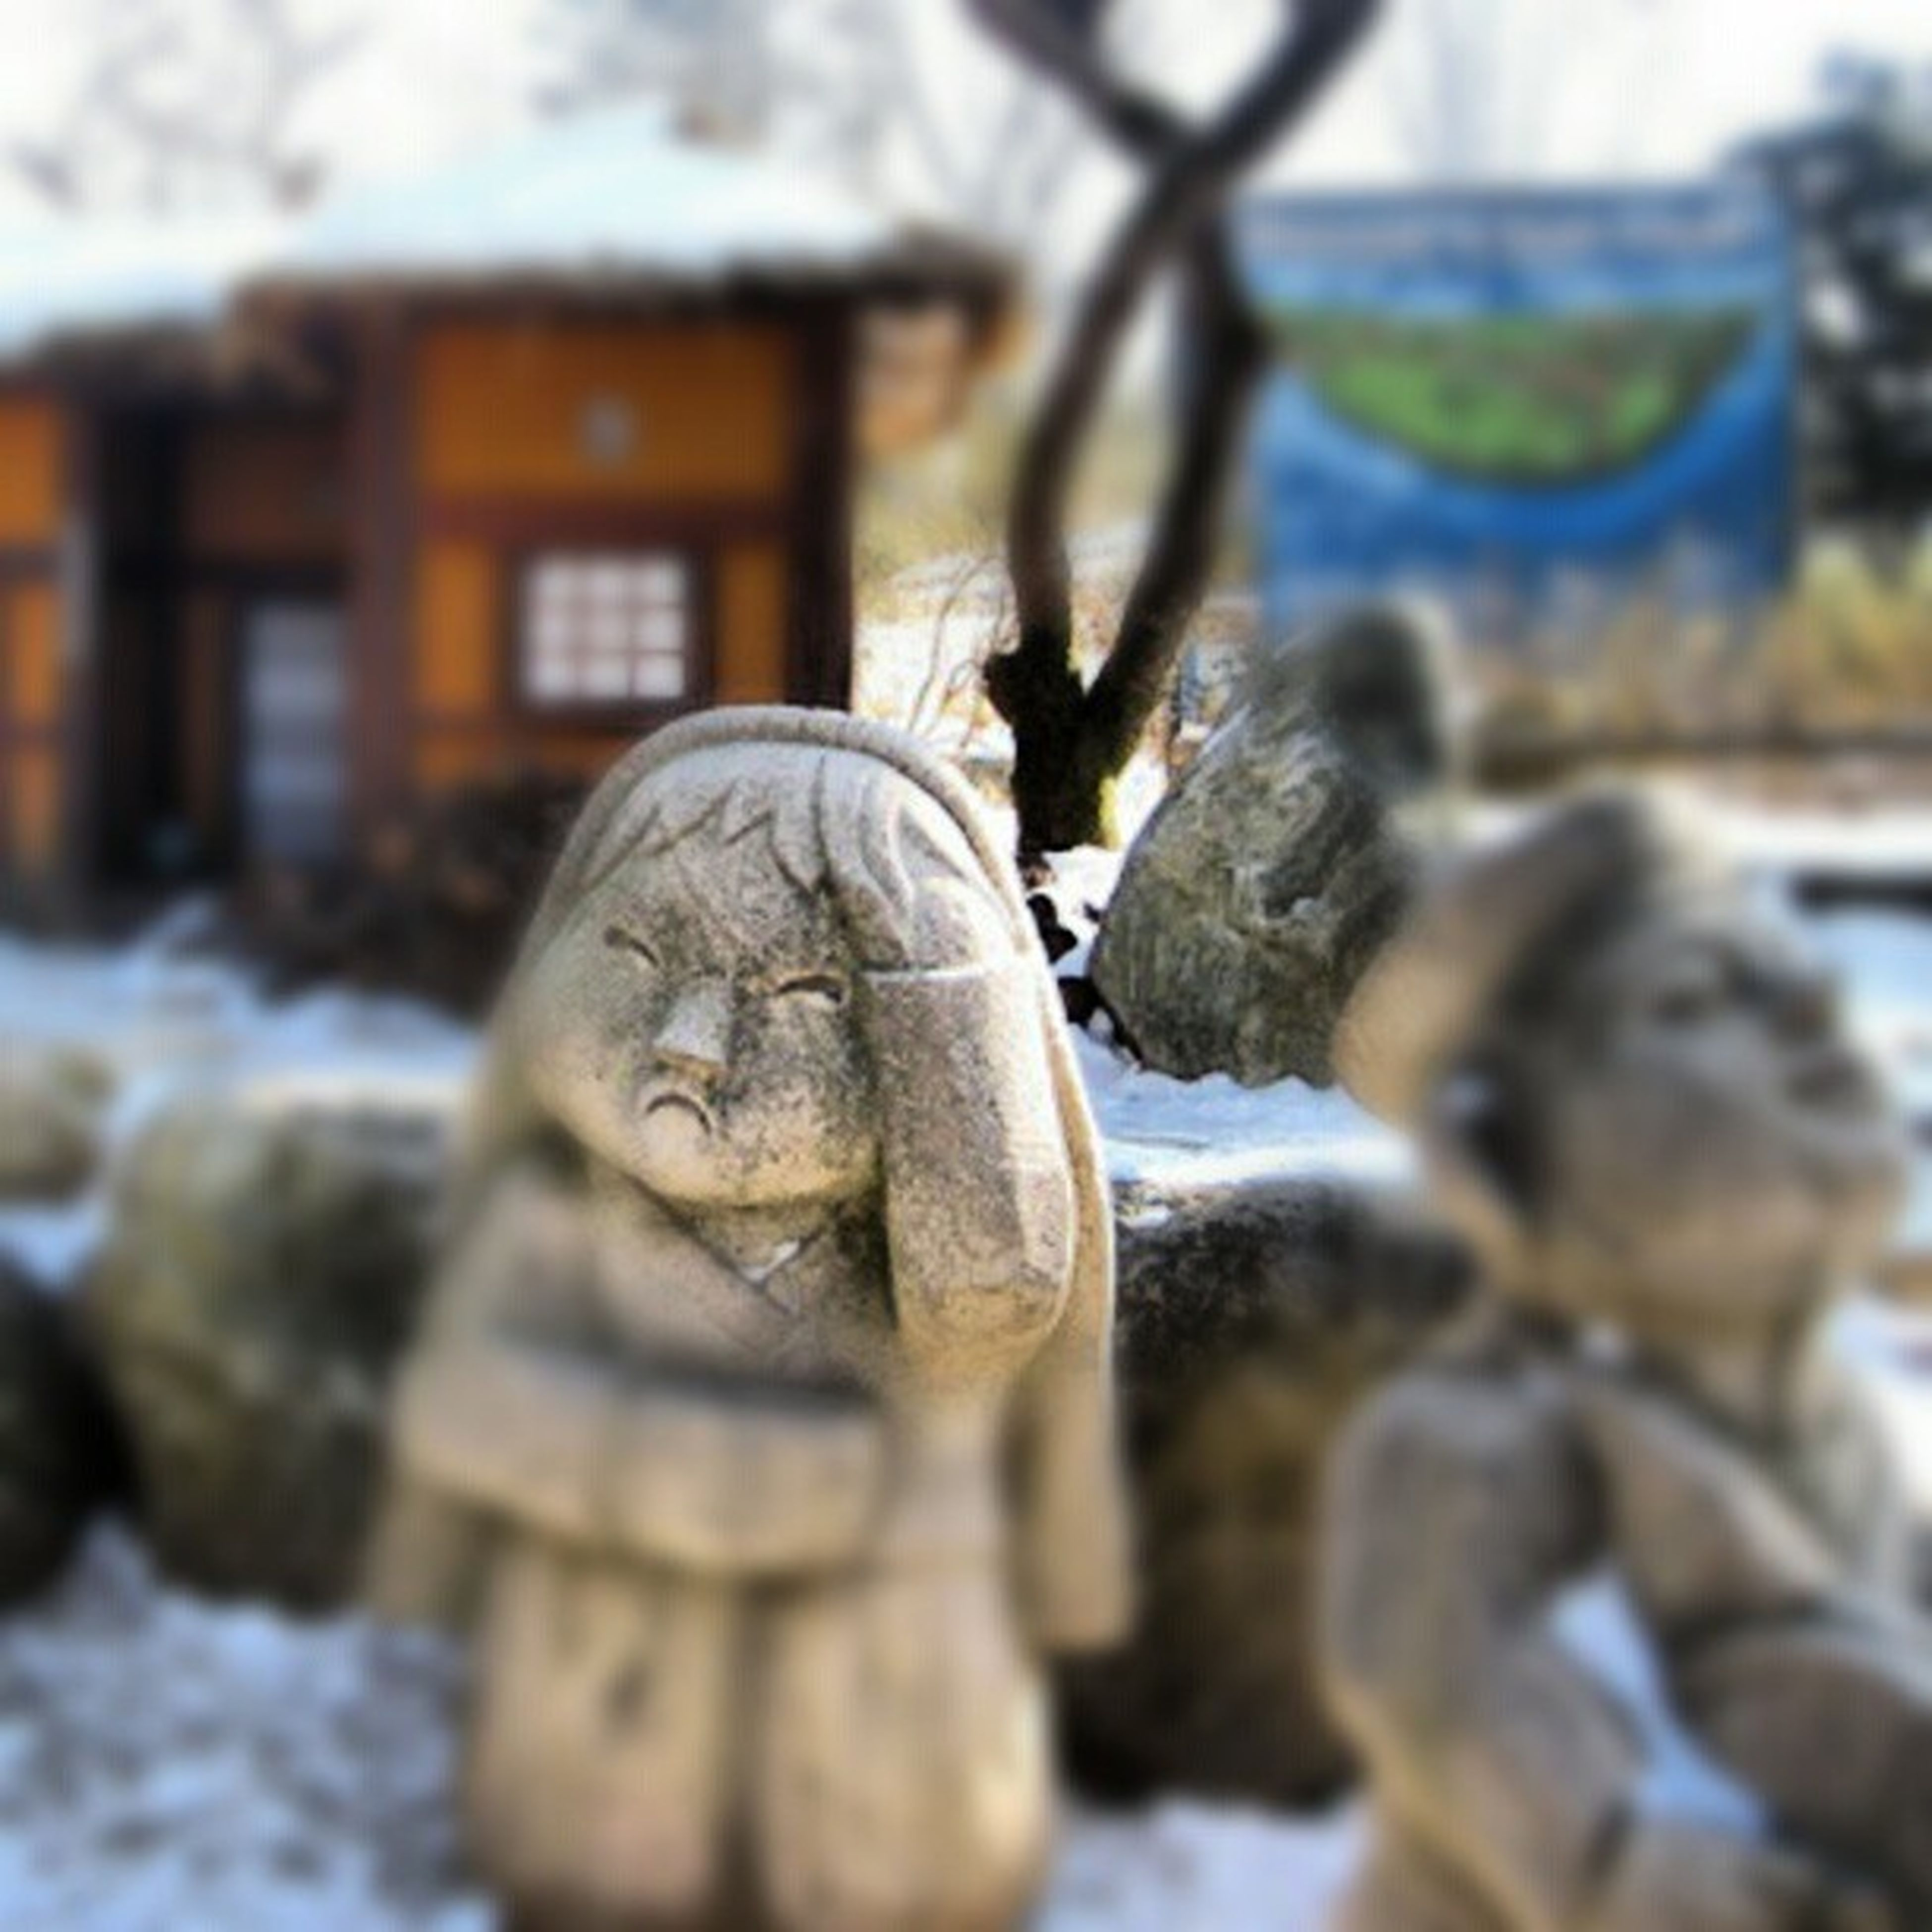 focus on foreground, statue, human representation, art and craft, sculpture, close-up, art, creativity, selective focus, tree, day, outdoors, cold temperature, snow, carving - craft product, religion, stone material, winter, nature